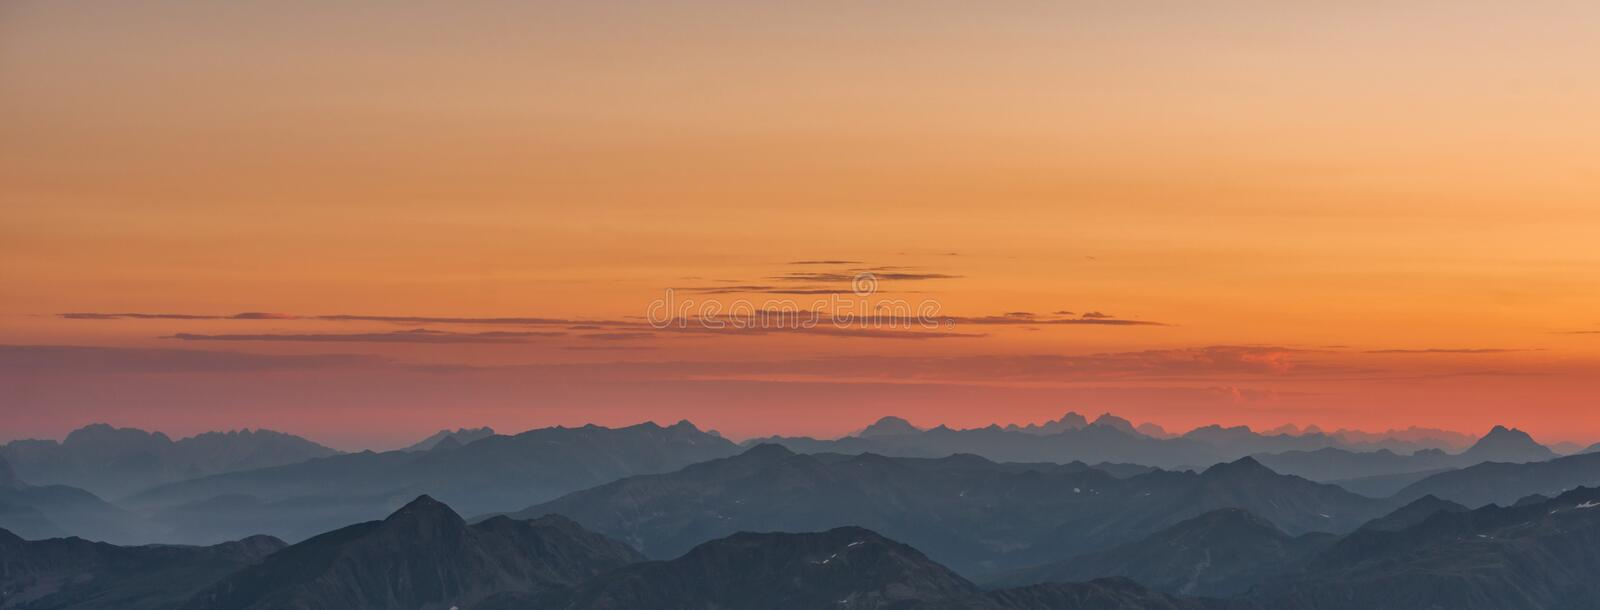 Areal View of Mountains during Sunset stock images